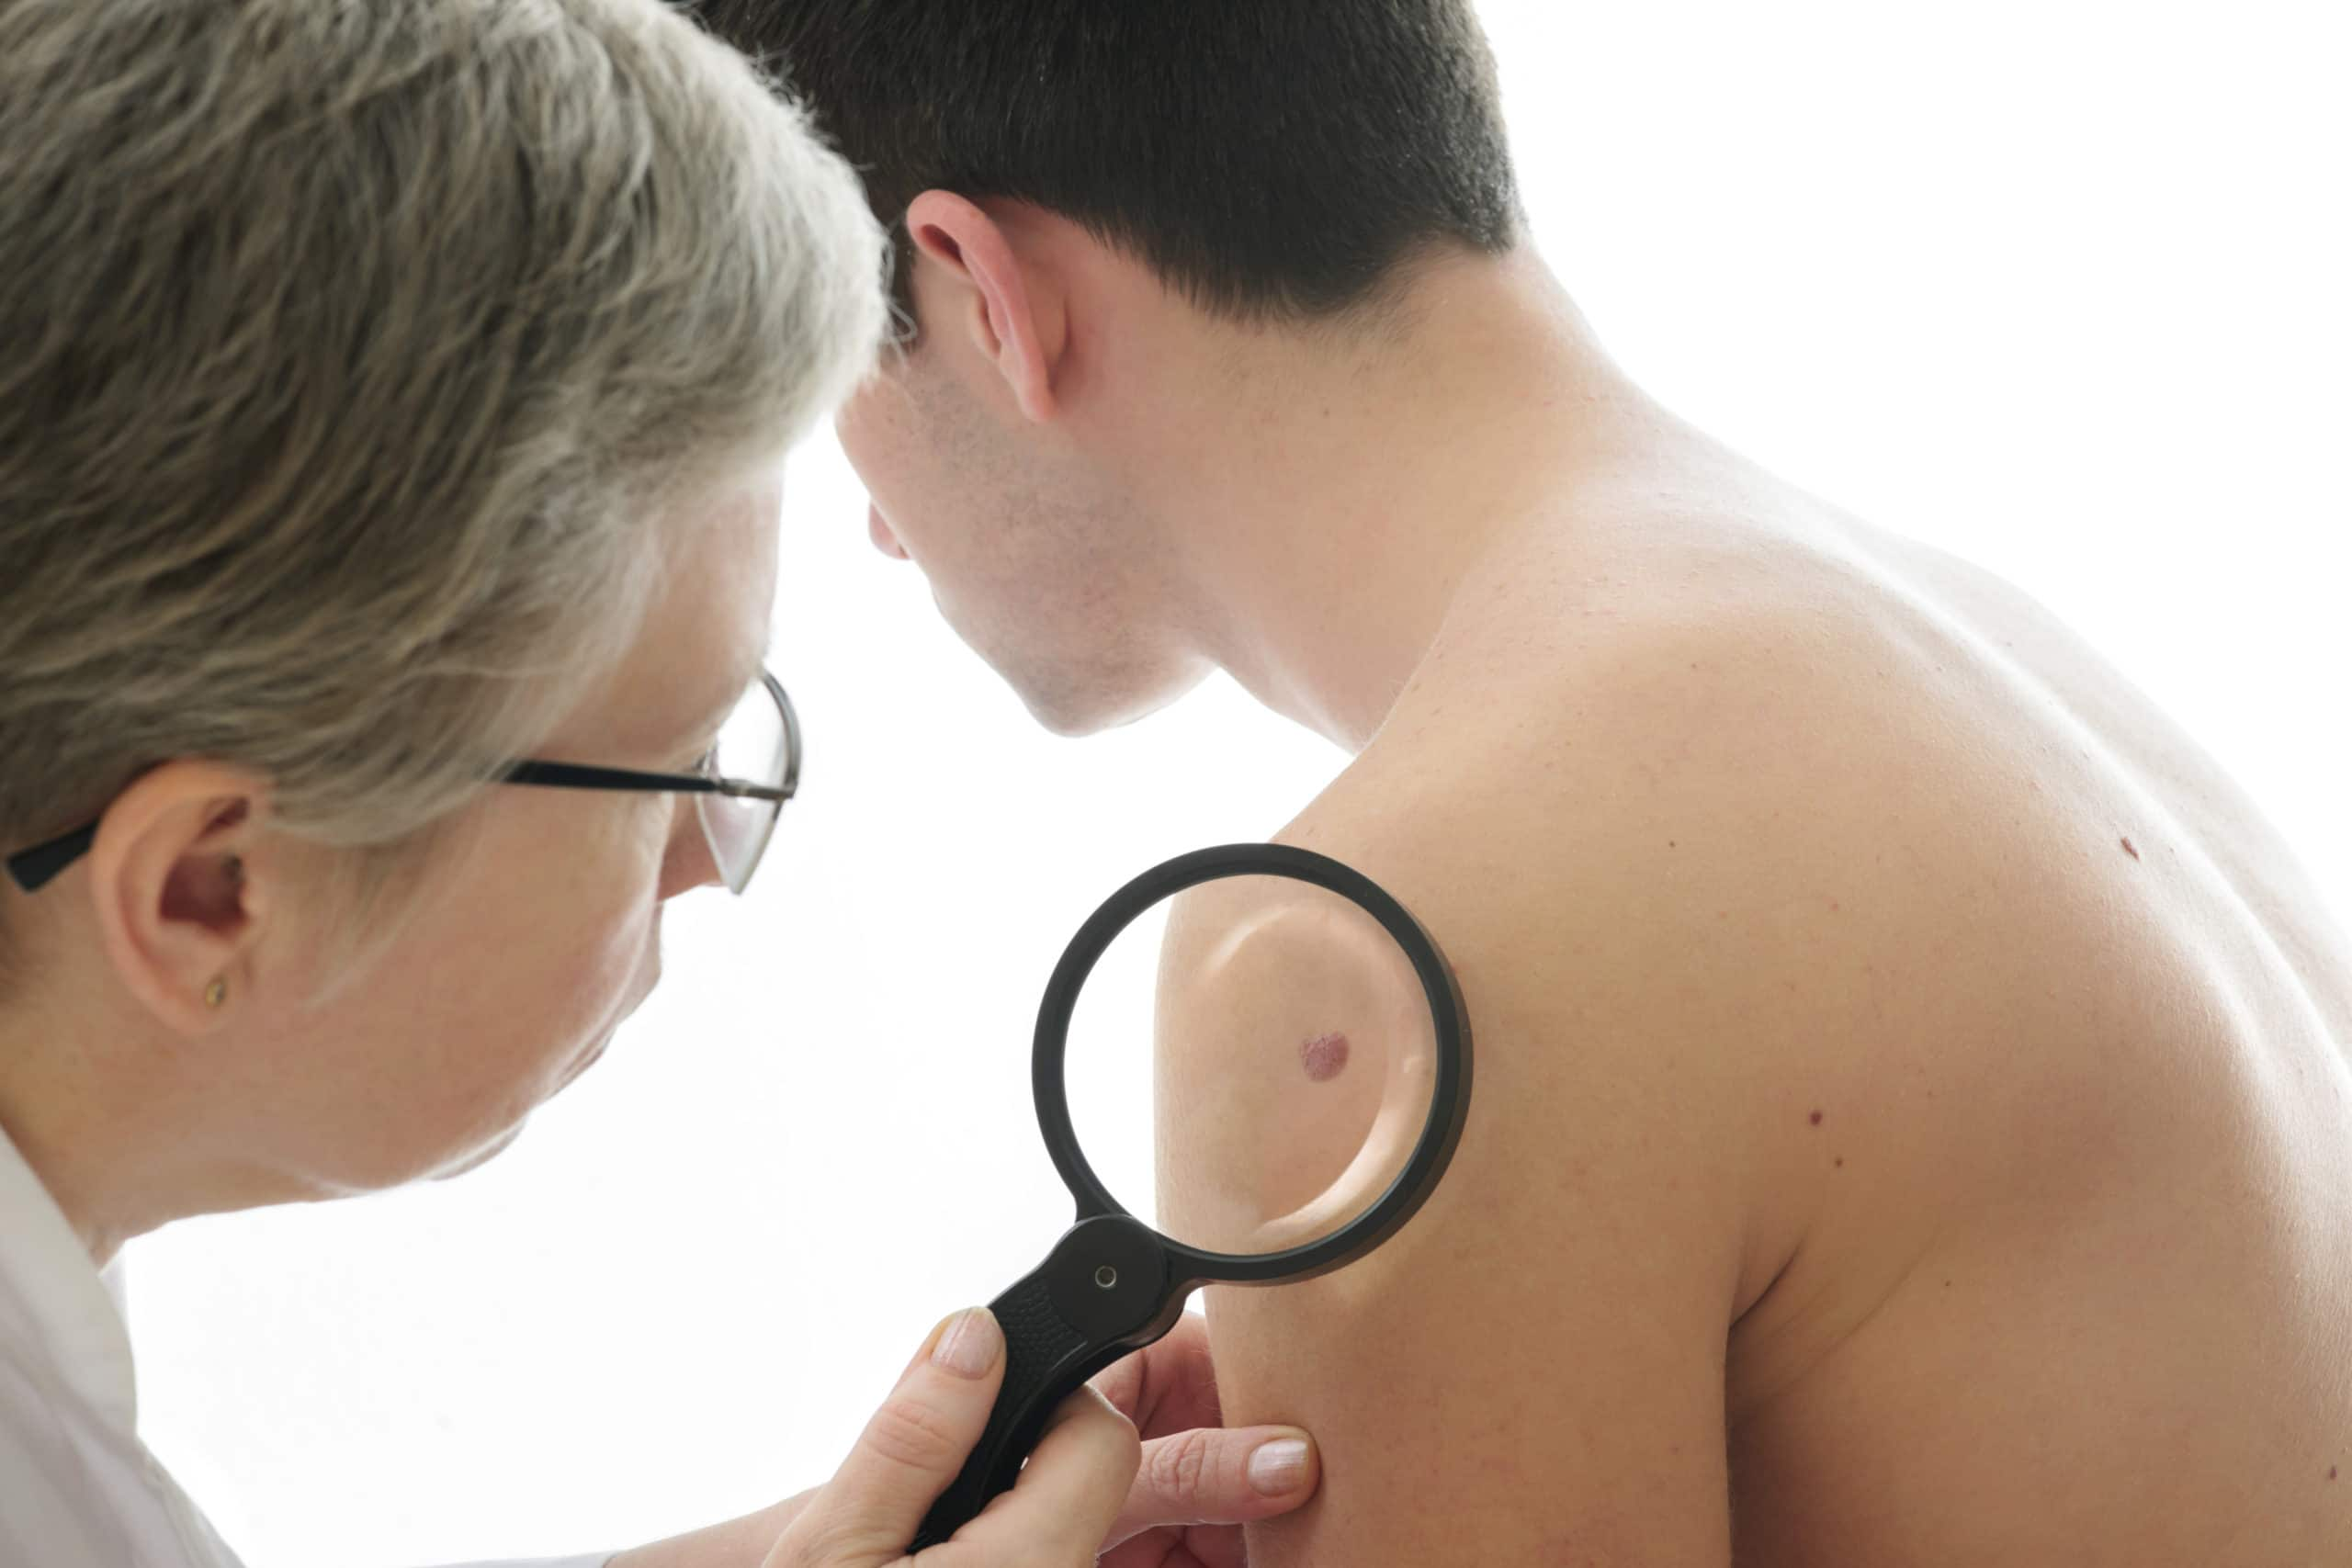 Picture of dermatologist examining a mole